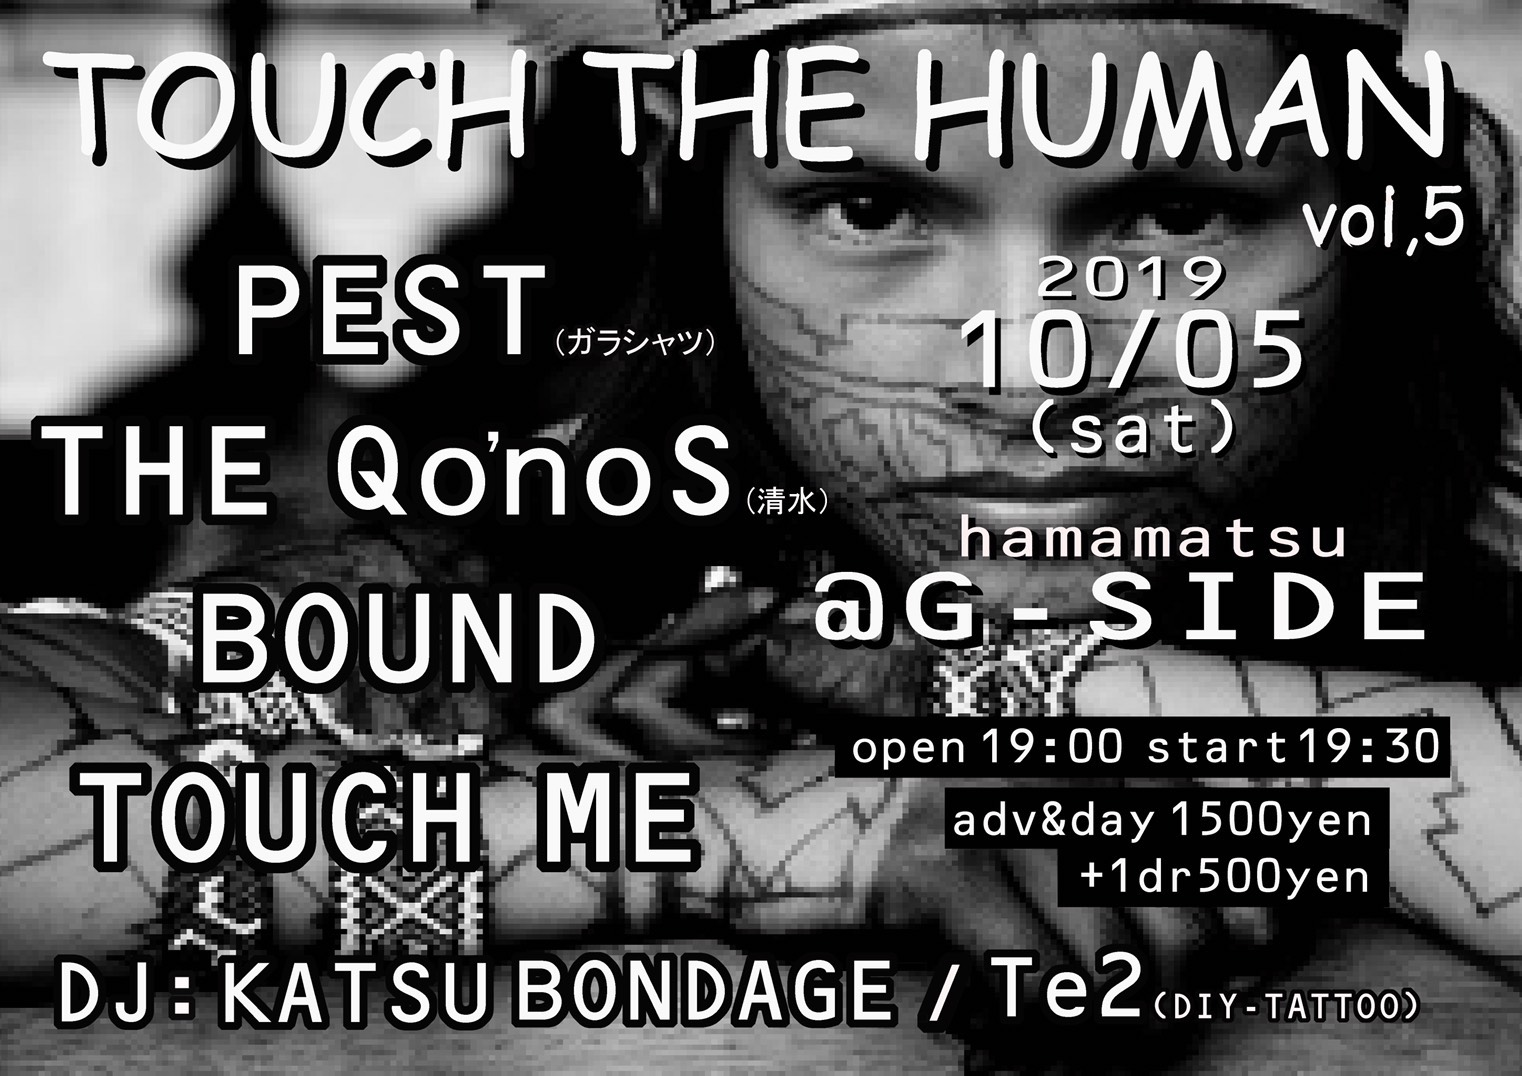 10月5日土曜日 TOUCH THE HUMAN vol.5